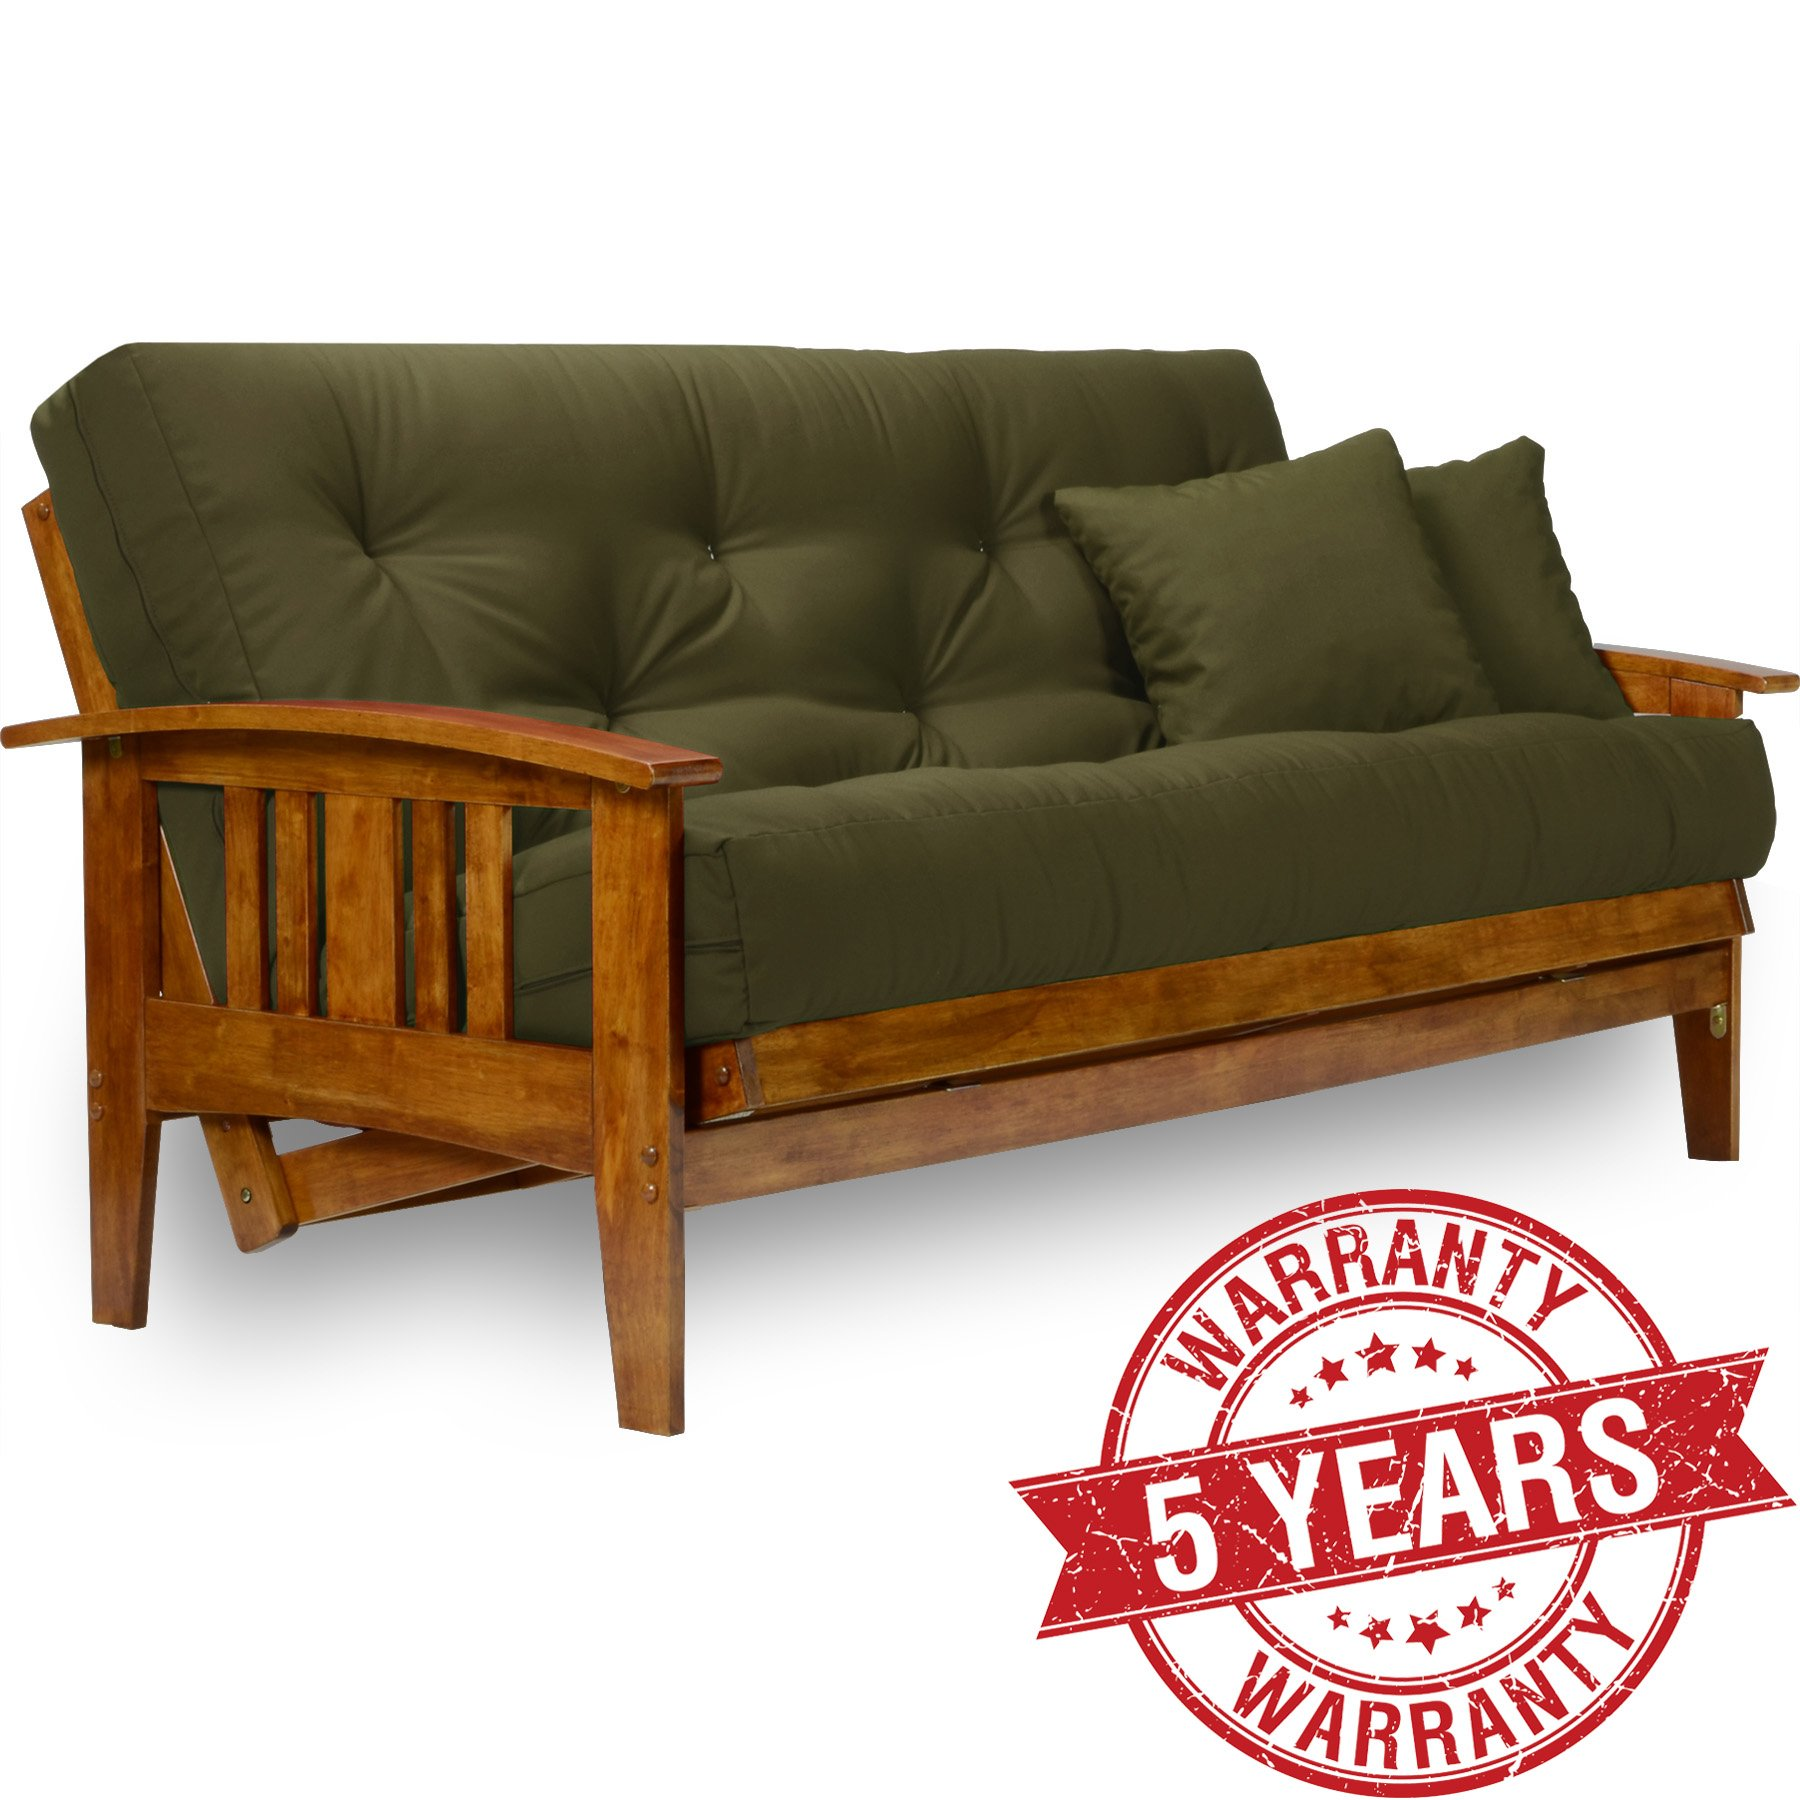 Nirvana Futons Westfield Futon Frame - Queen Size, Solid Hardwood by Nirvana Futons